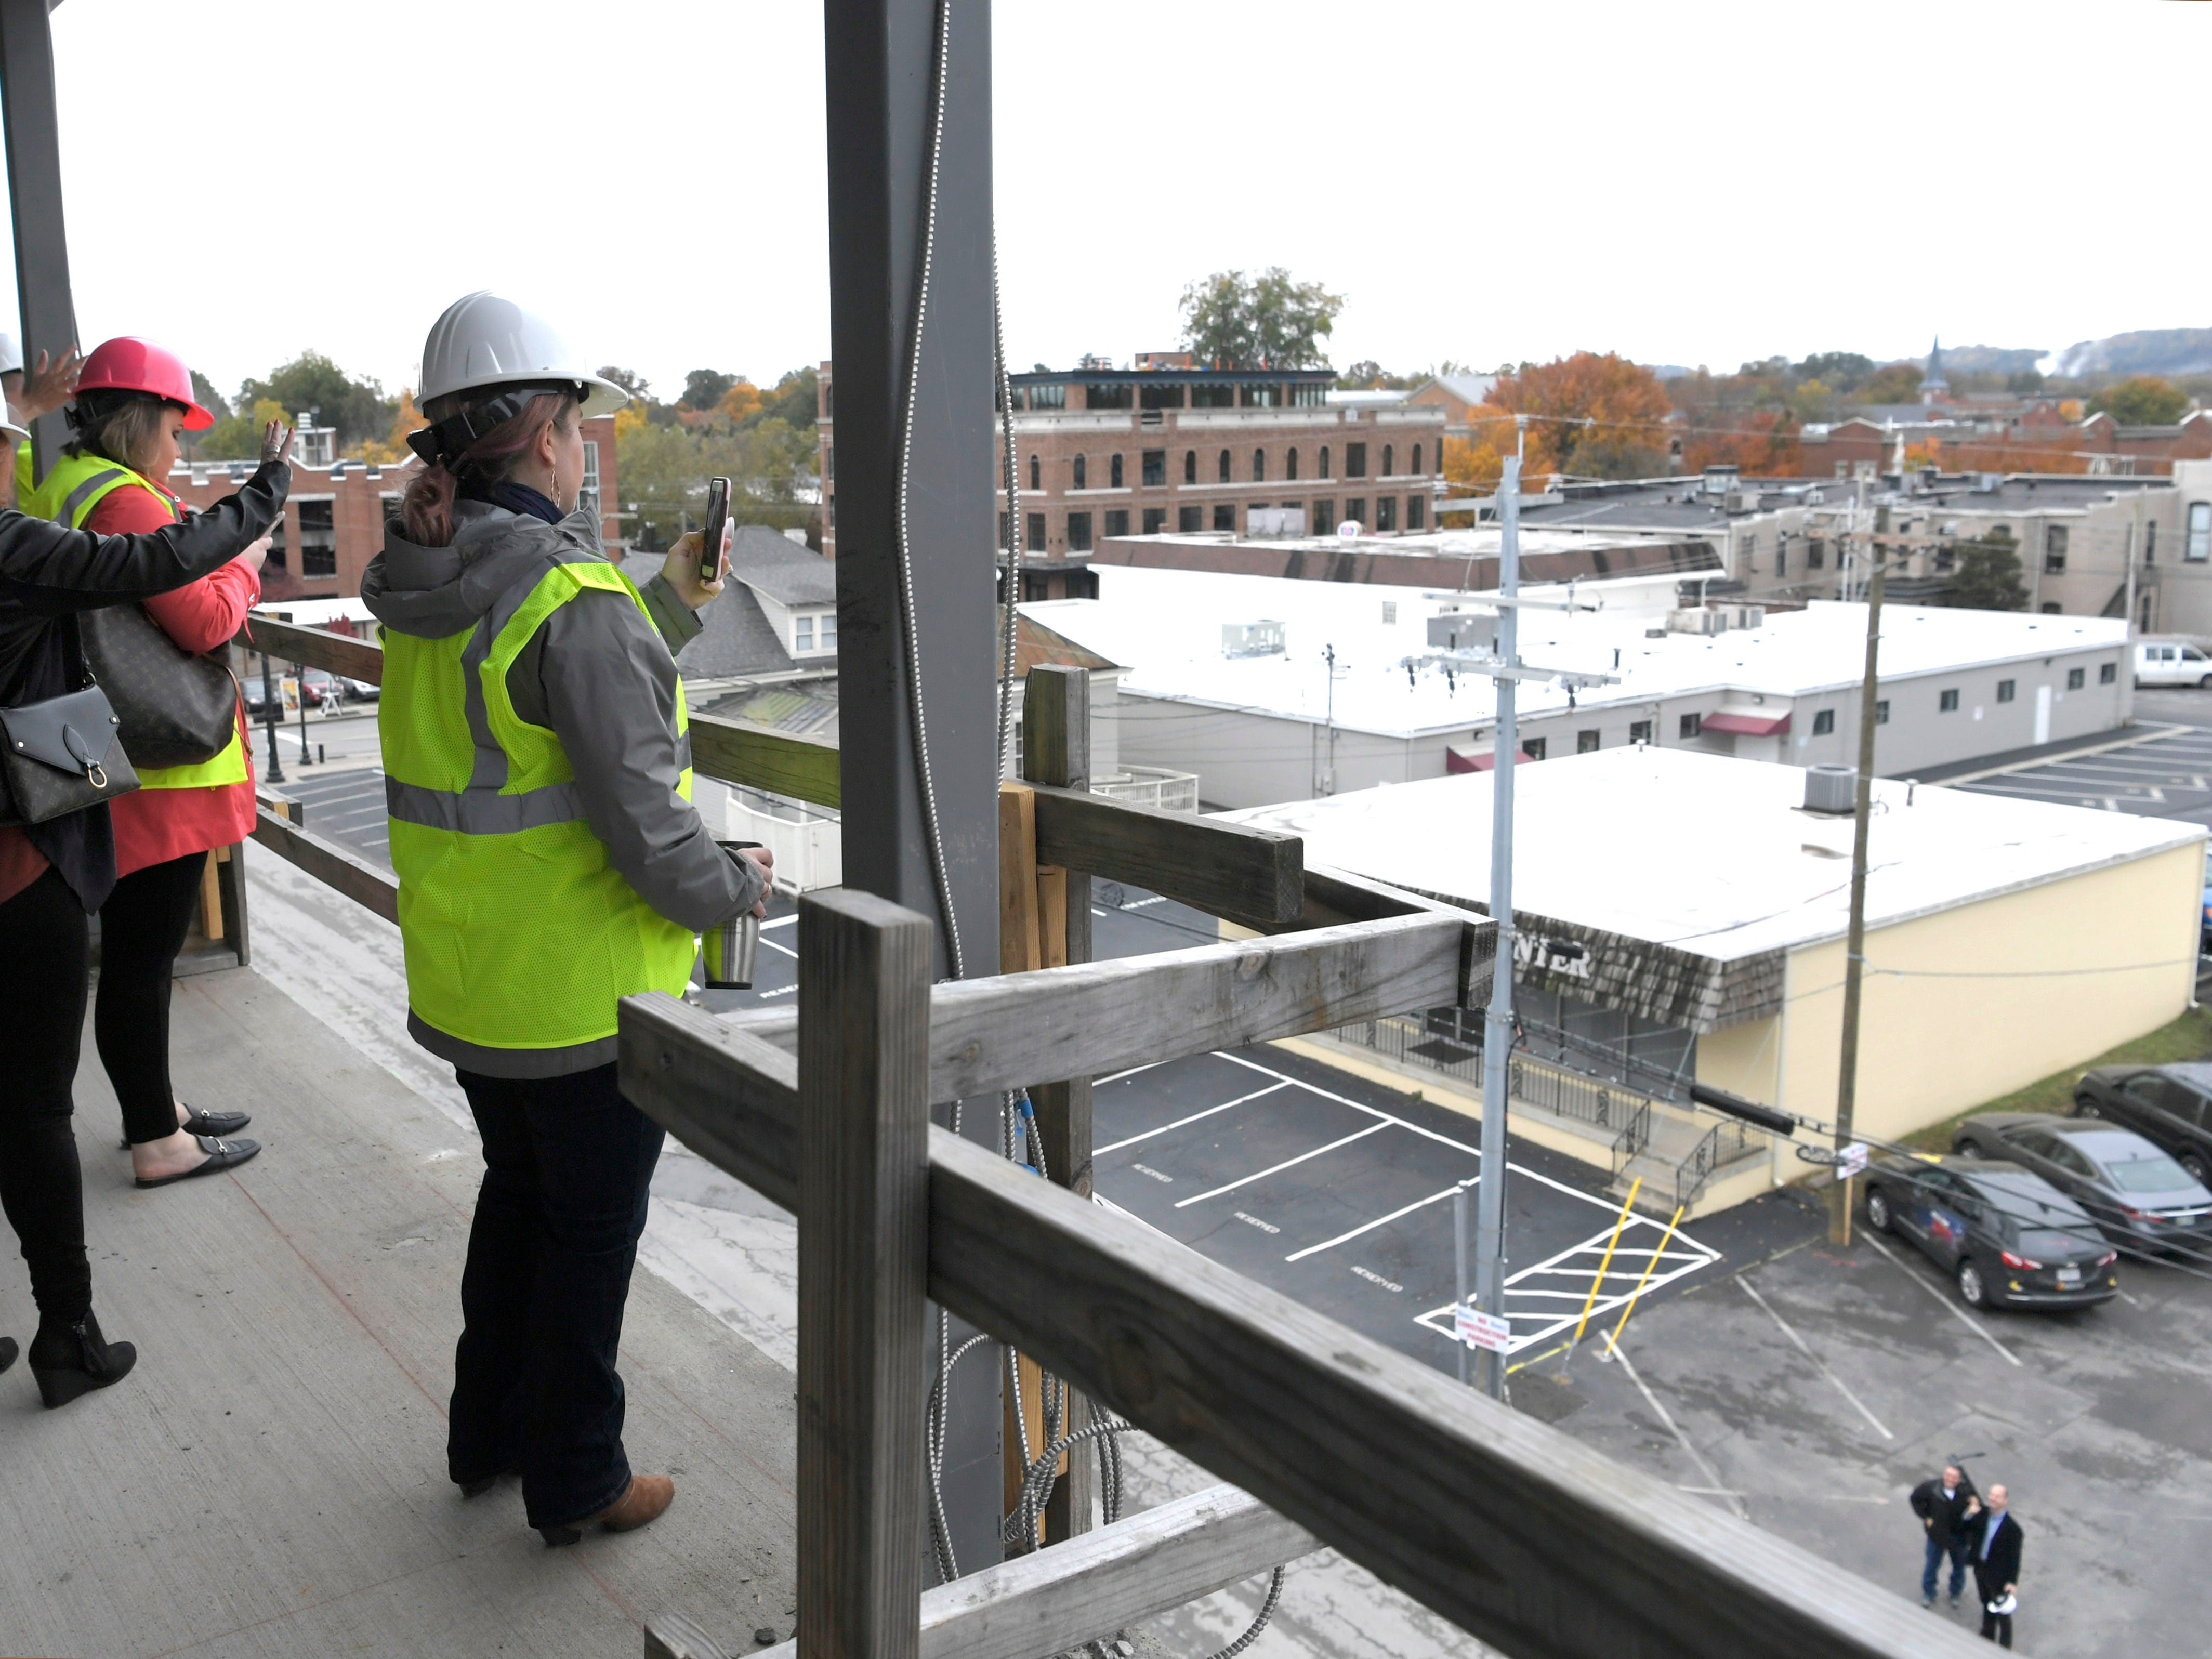 People take photographs of the view of downtown Franklin from a balcony at Harpeth Square during a tour of the construction site on Monday, Nov. 5, 2018.  It's been nearly a year since the $110 million development in downtown Franklin broke ground.   Harpeth Square is featuring a Curio Hilton Hotel with restaurant, 150 apartments, retail/restaurant space with street-level space, and 591-space parking garage.